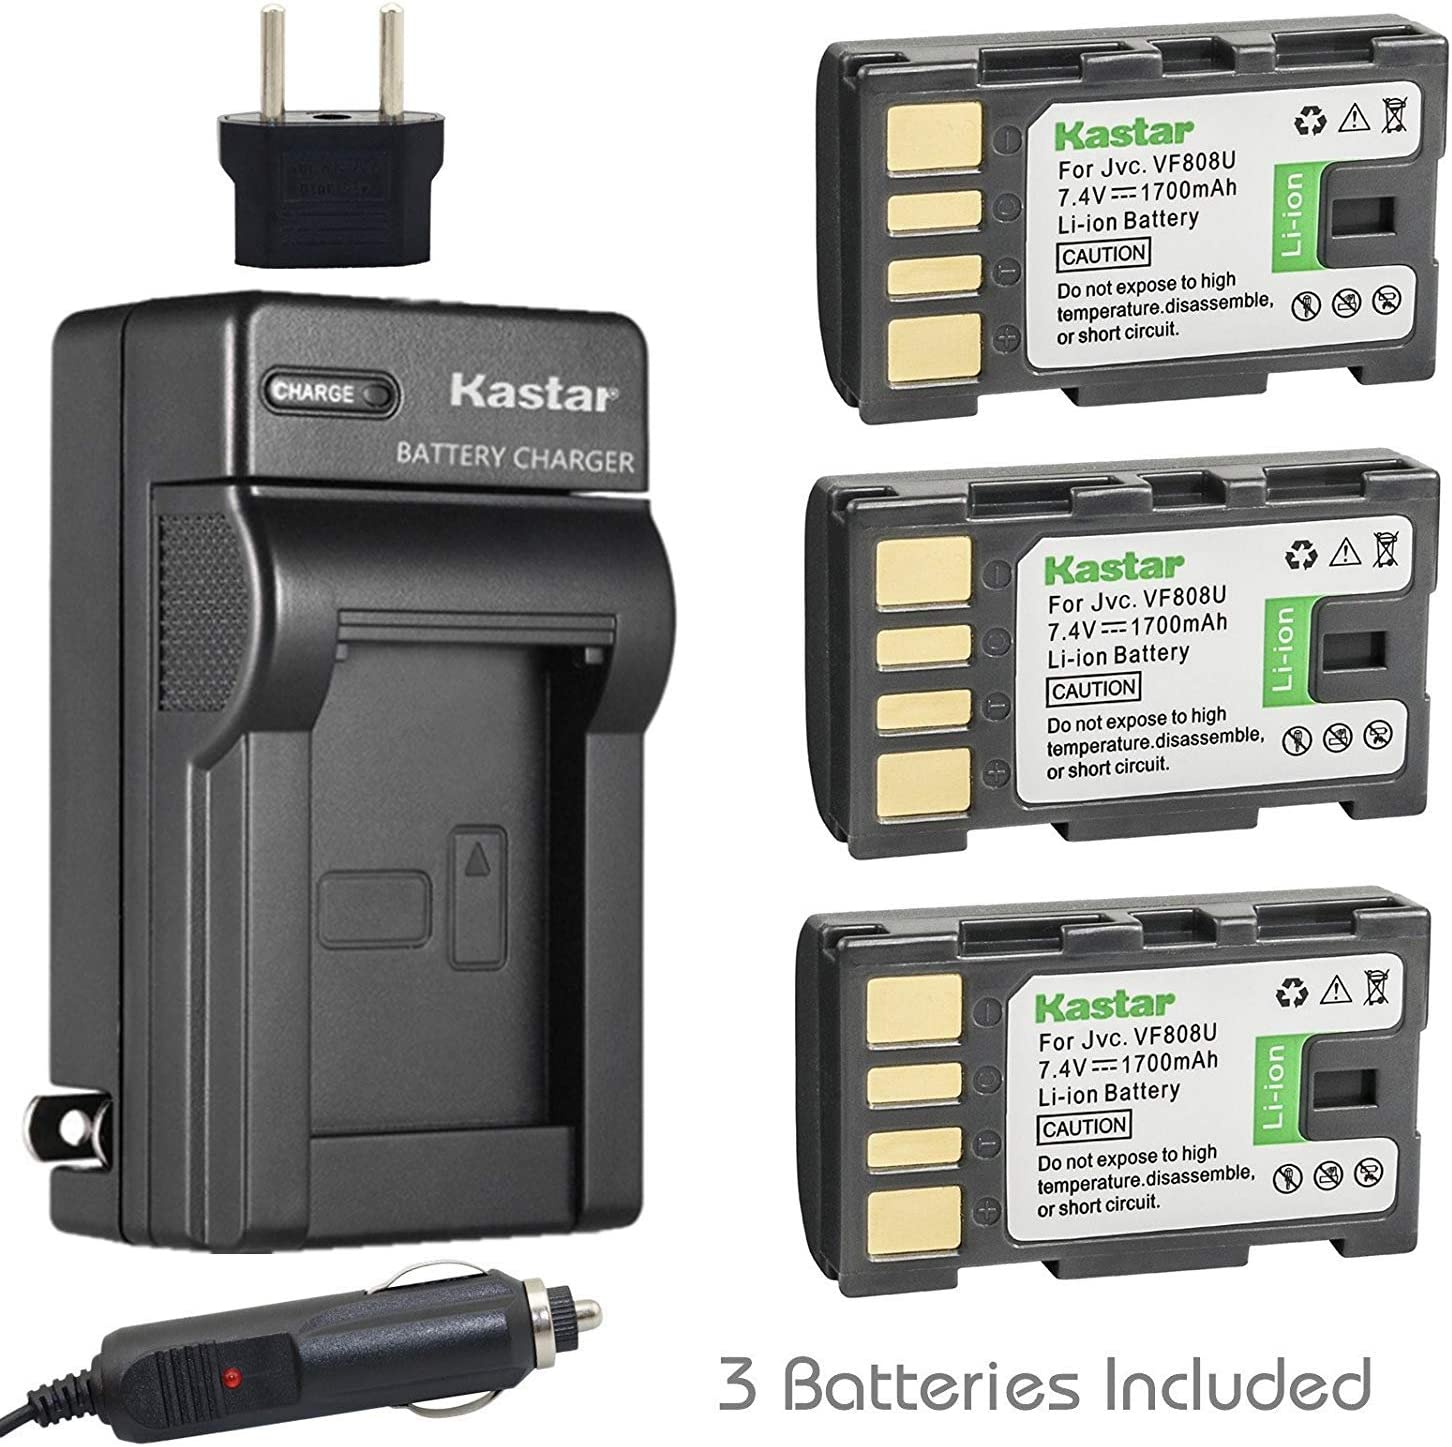 Kastar Battery (3-Pack) and Charger Kit for JVC BN-VF808 BN-VF808U and GZ-HM90 GZ-X900 GC-PX100 GC-P100 GC-PX1 GC-PX10 GR-D720 GR-D725 GR-D726 GR-D728 GR-D740 GR-D745 GR-D746 GR-D750 GR-D760 GR-D770